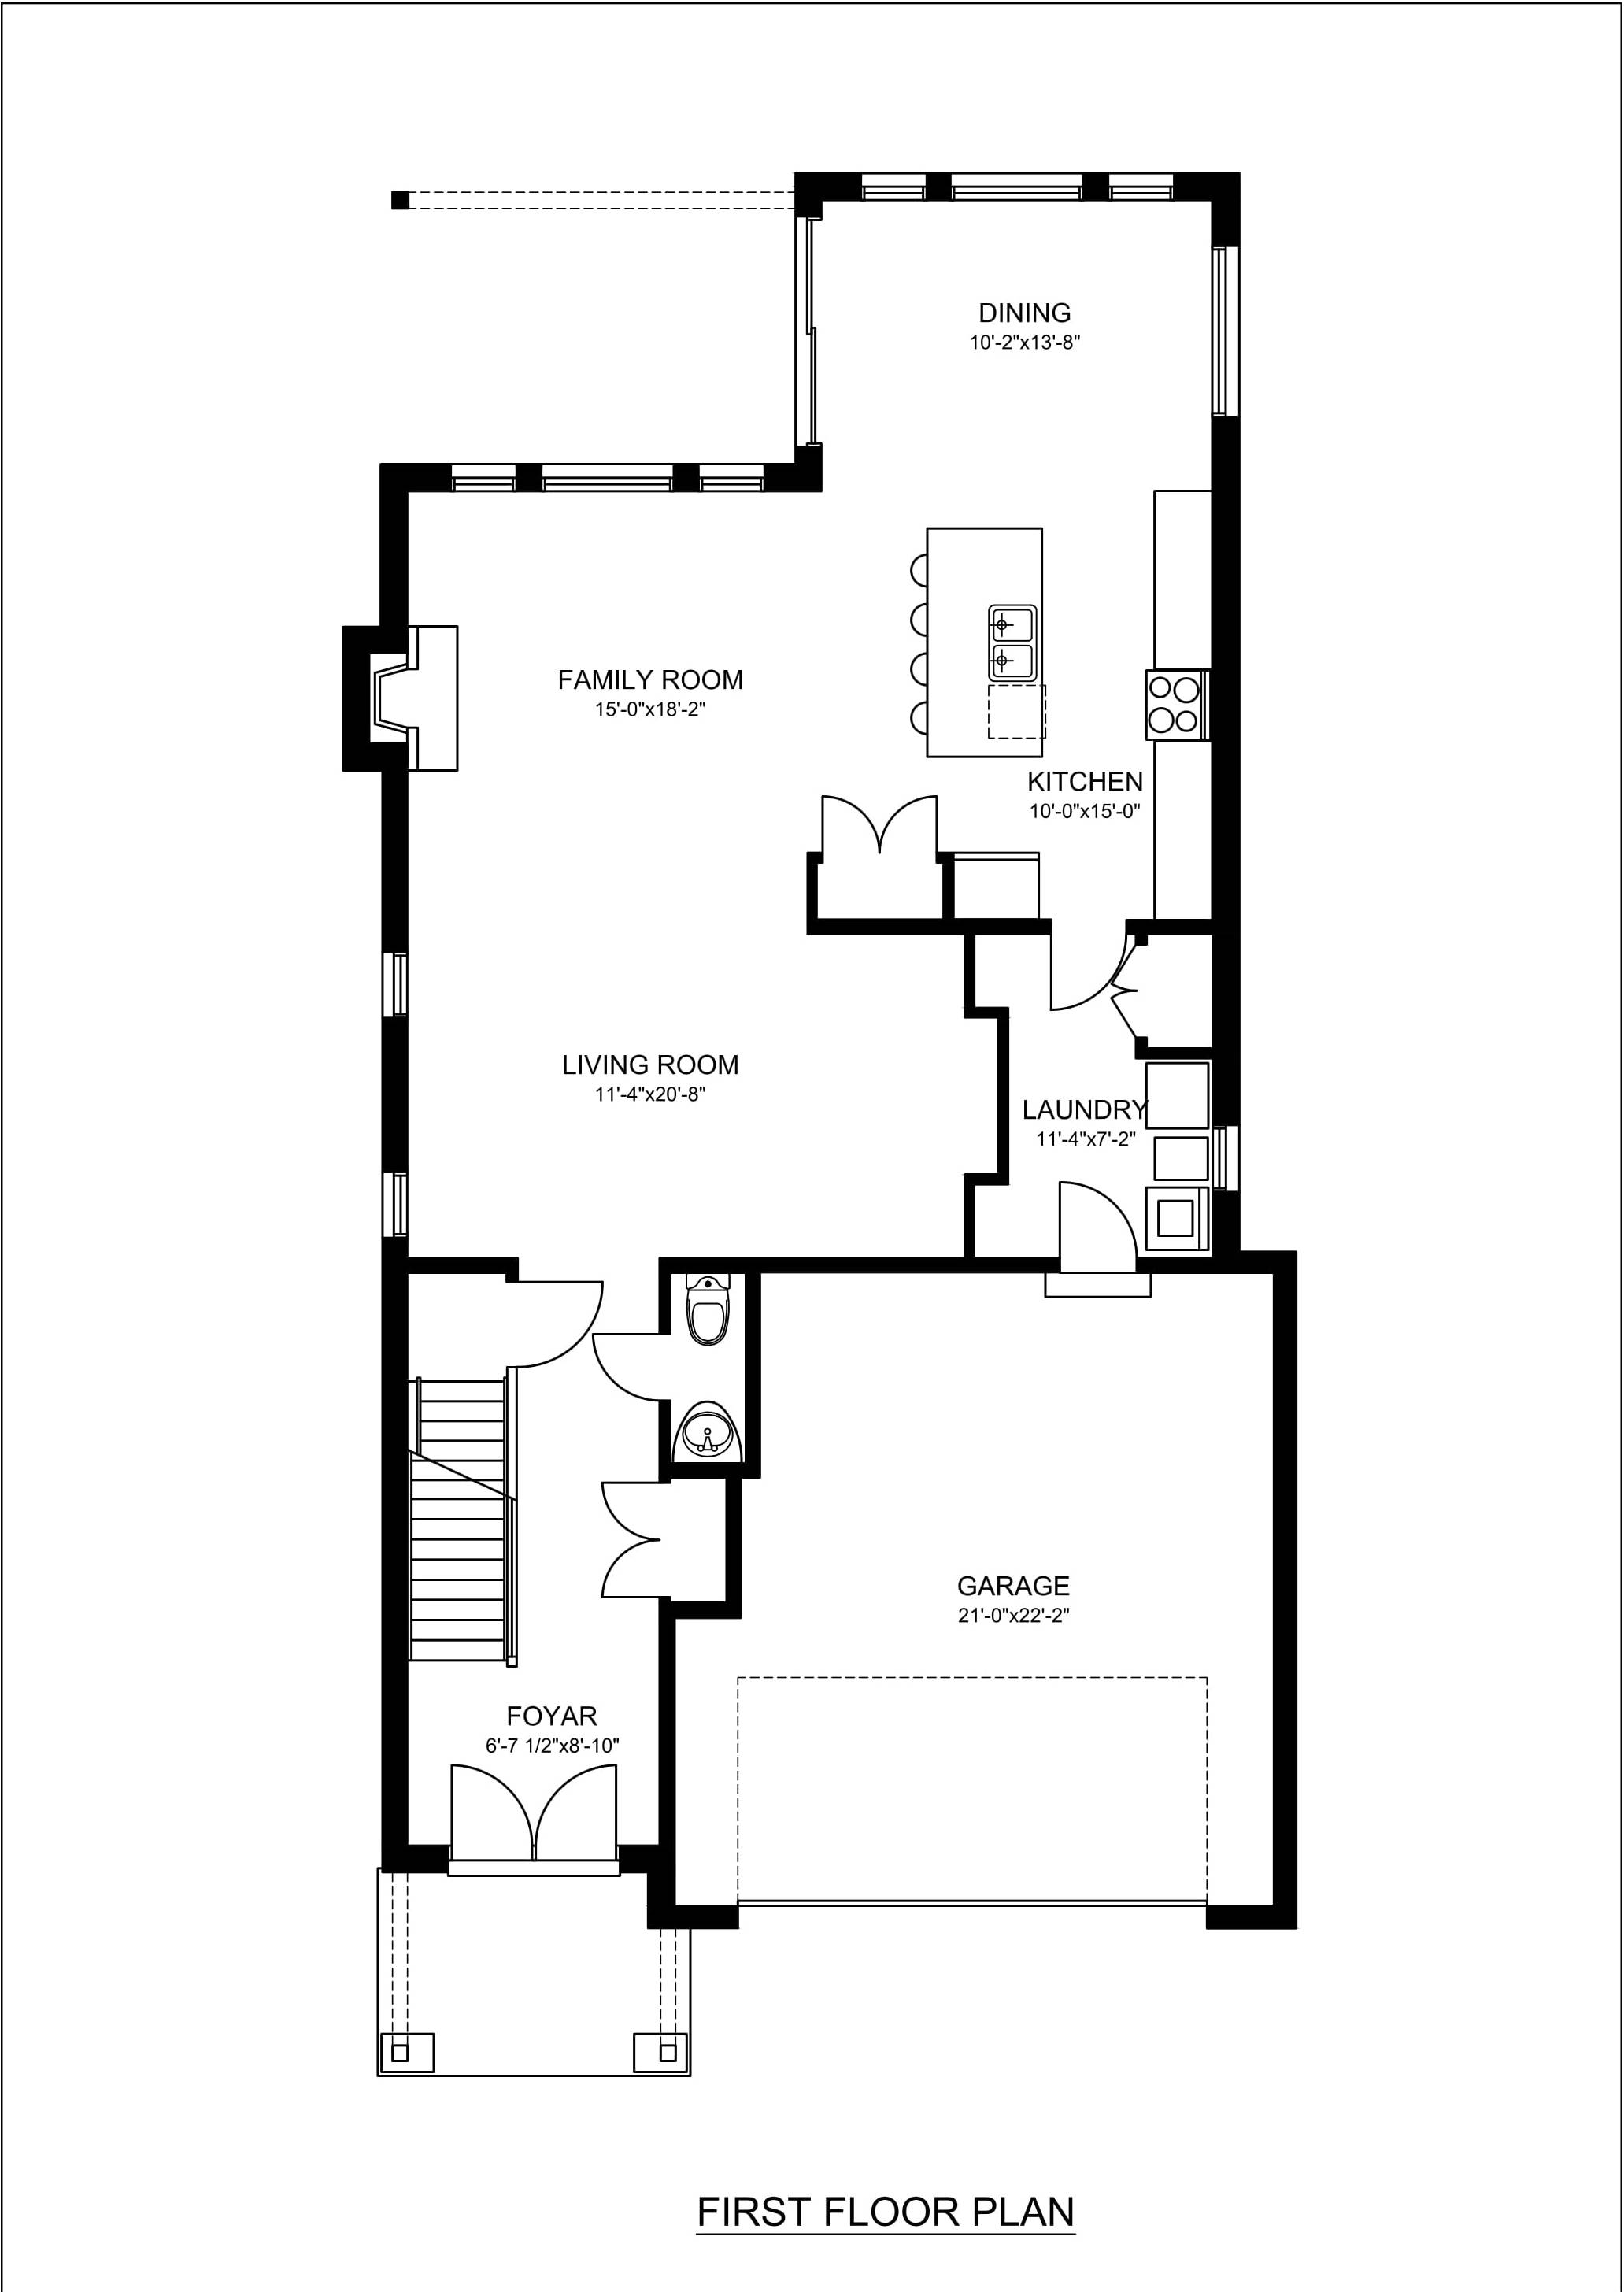 2d Floor Plan Design Rendering Samples Examples